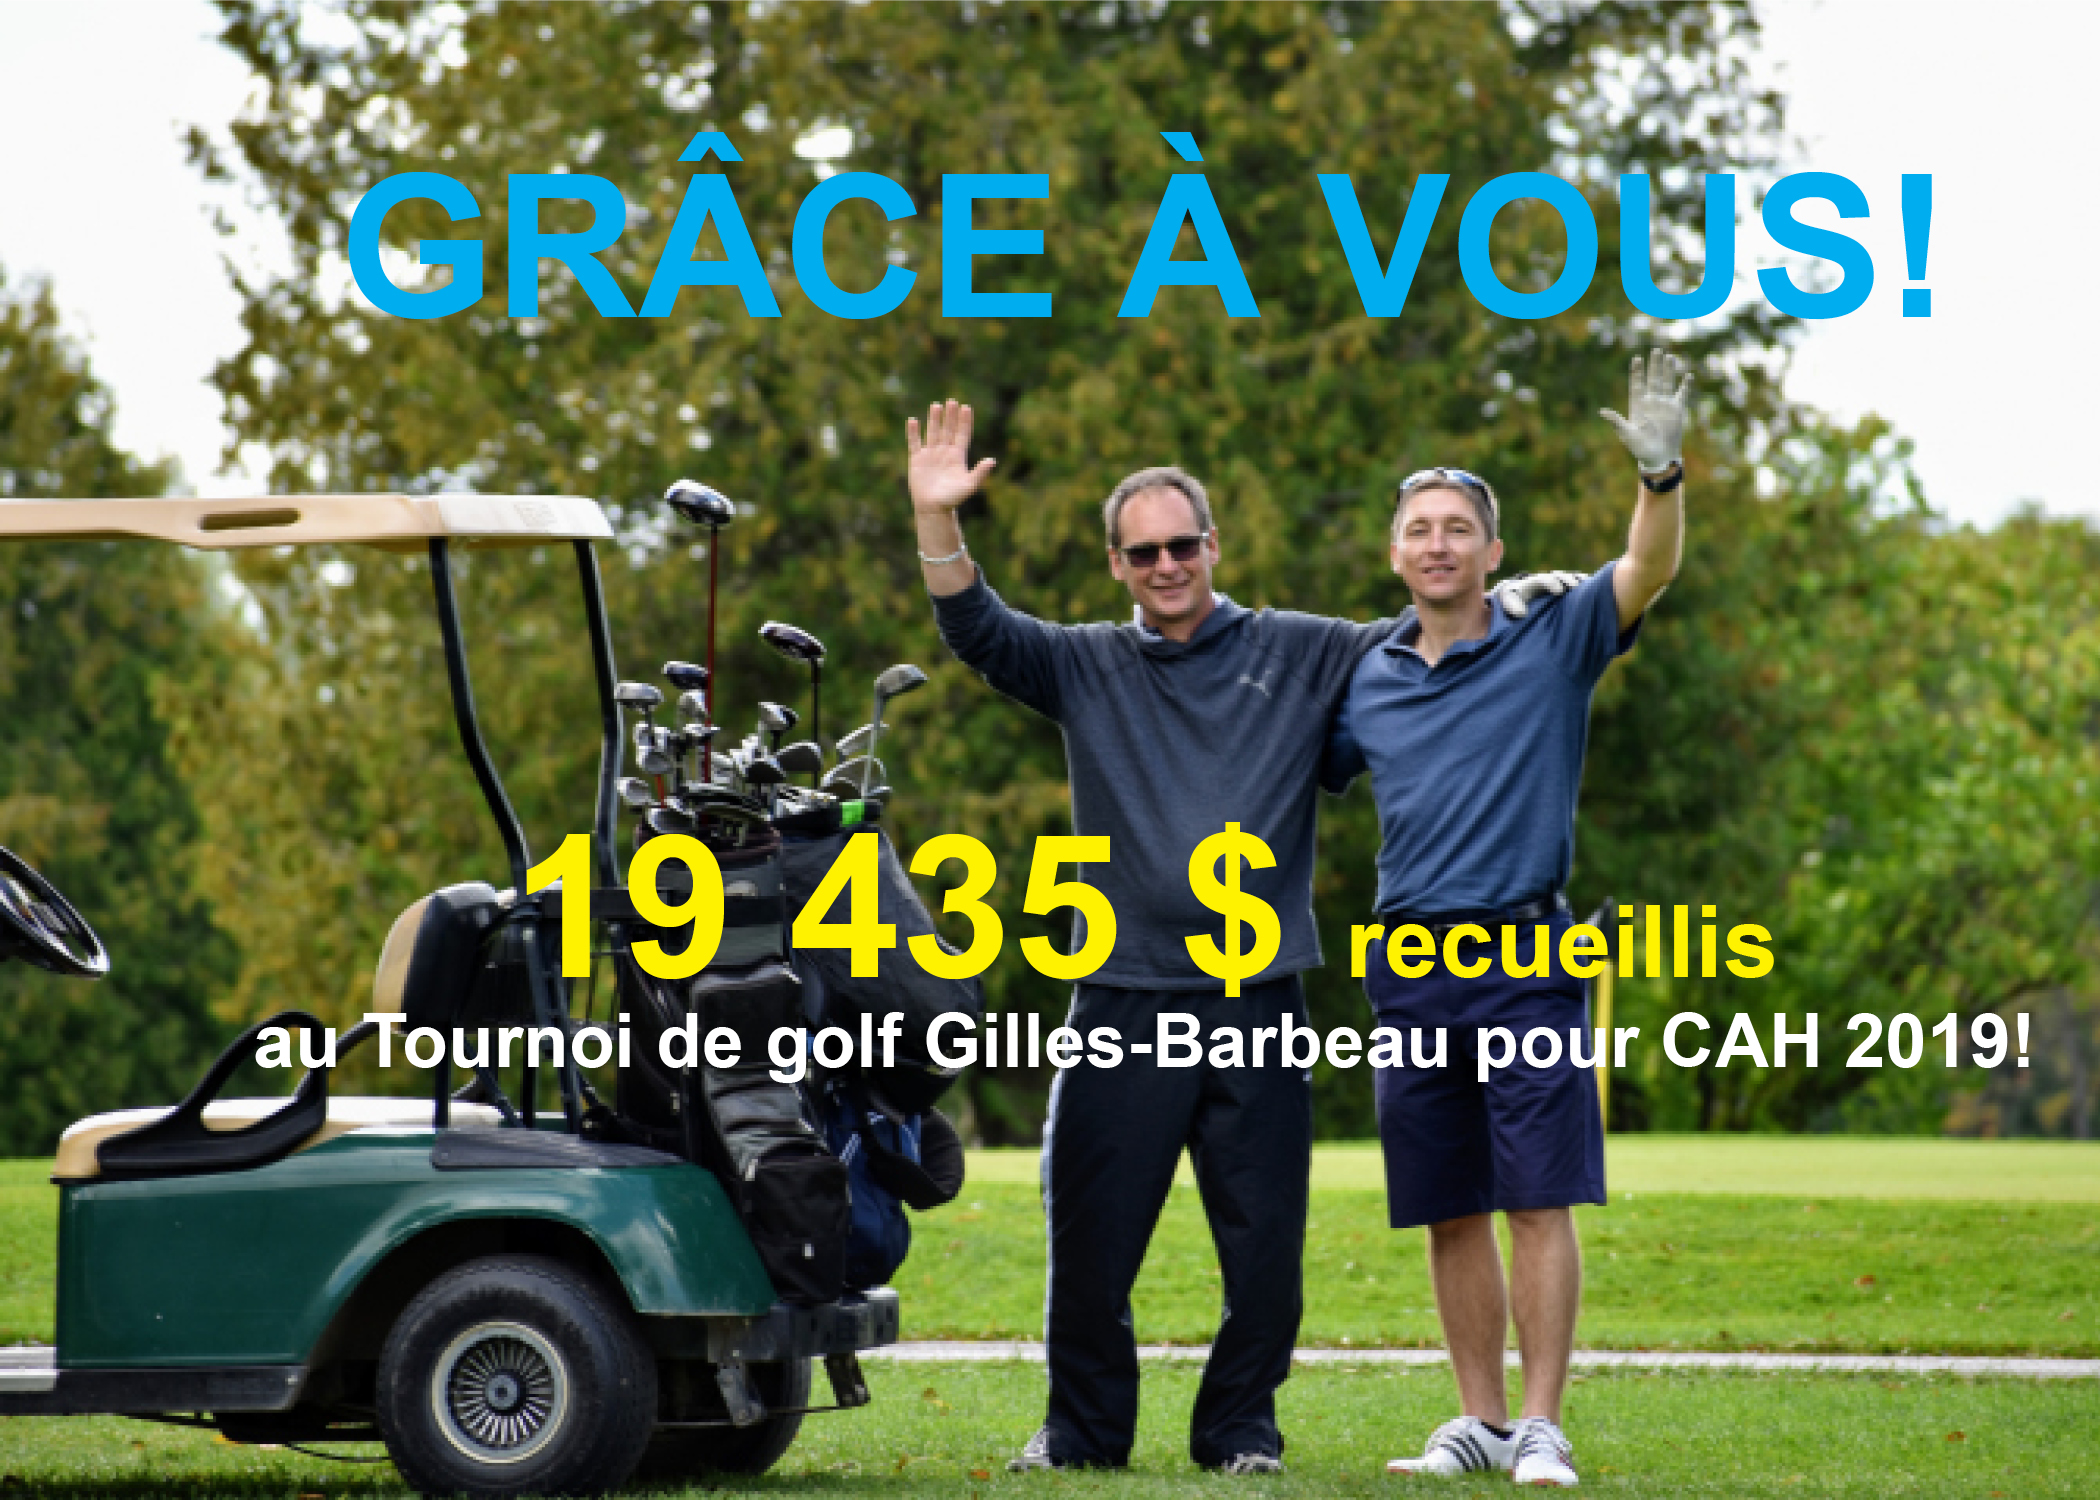 Gilles-Barbeau Golf Tournament for CAH